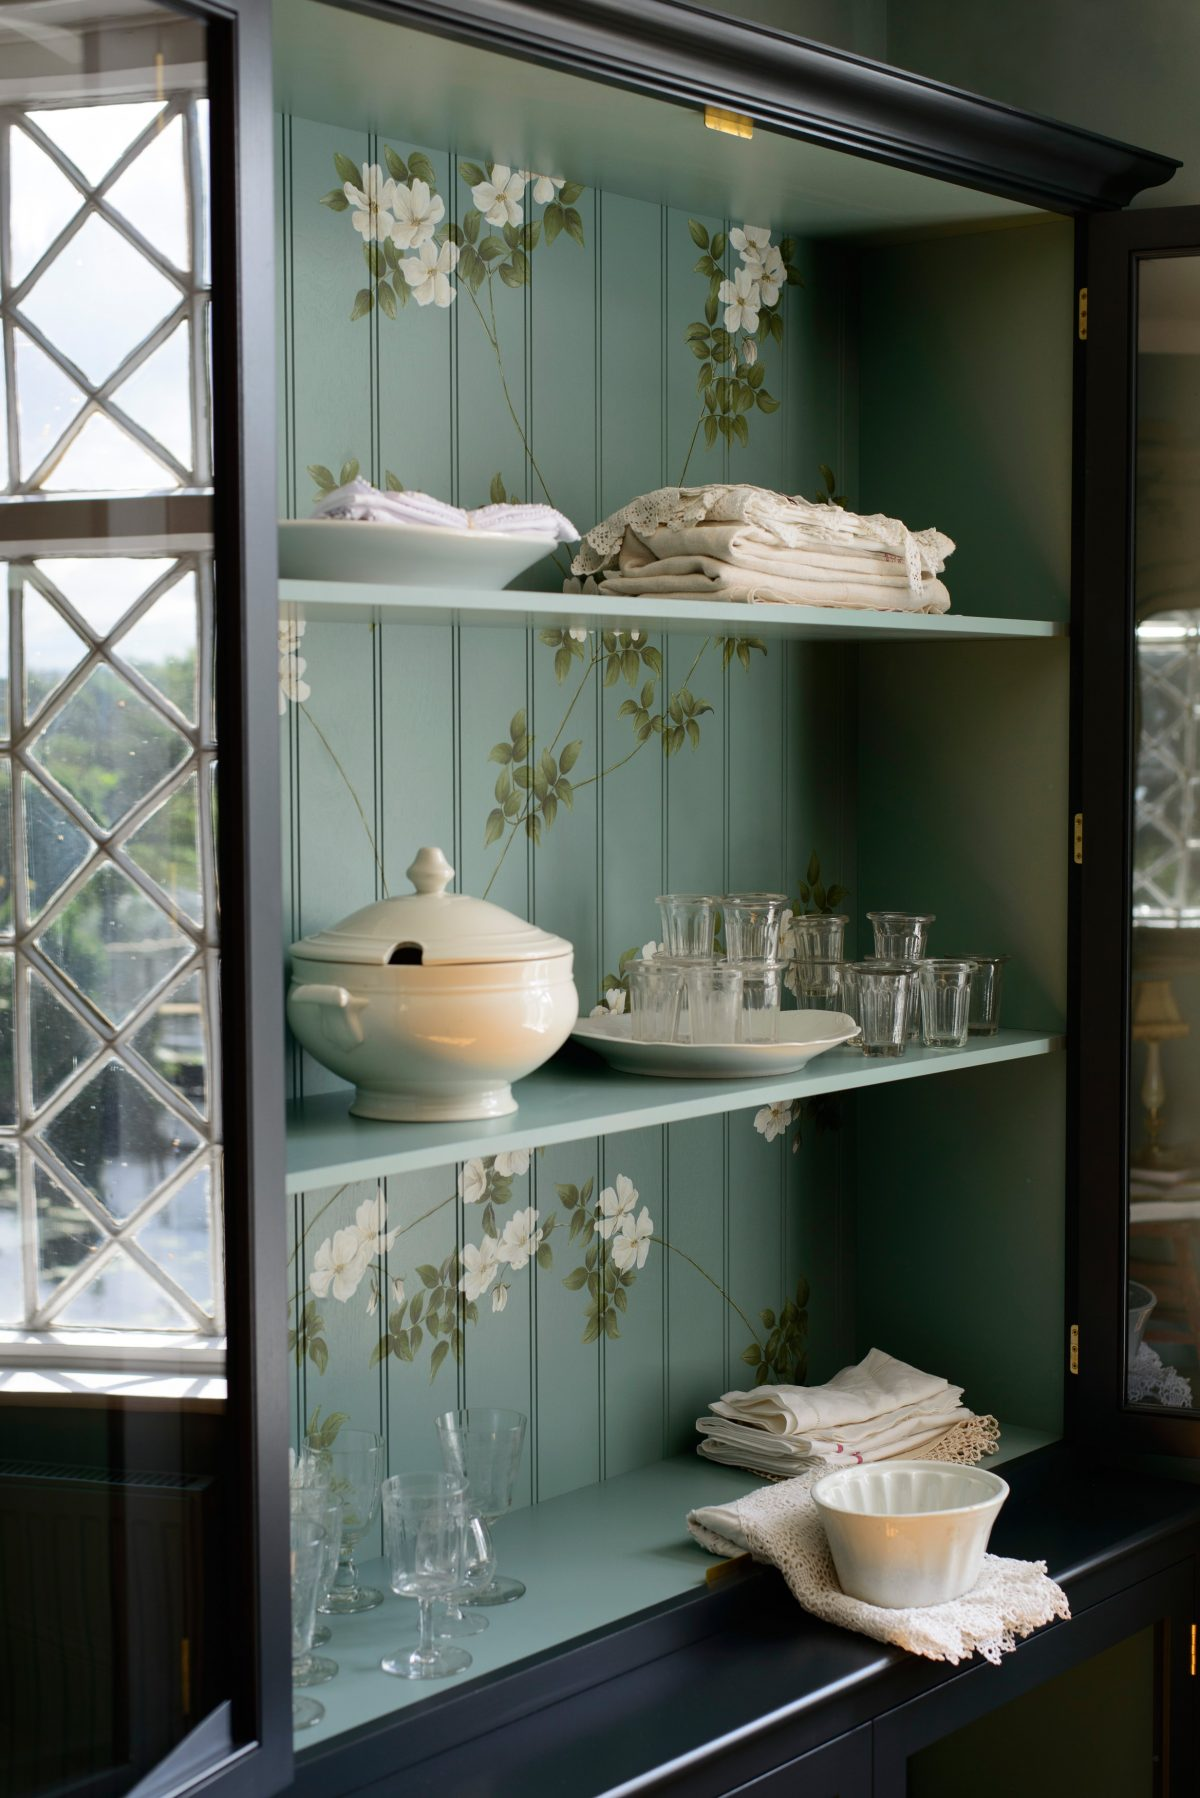 This Printer's Black Curiosity Cupboard has been adorned with our 'Rambling Wild Roses' design.